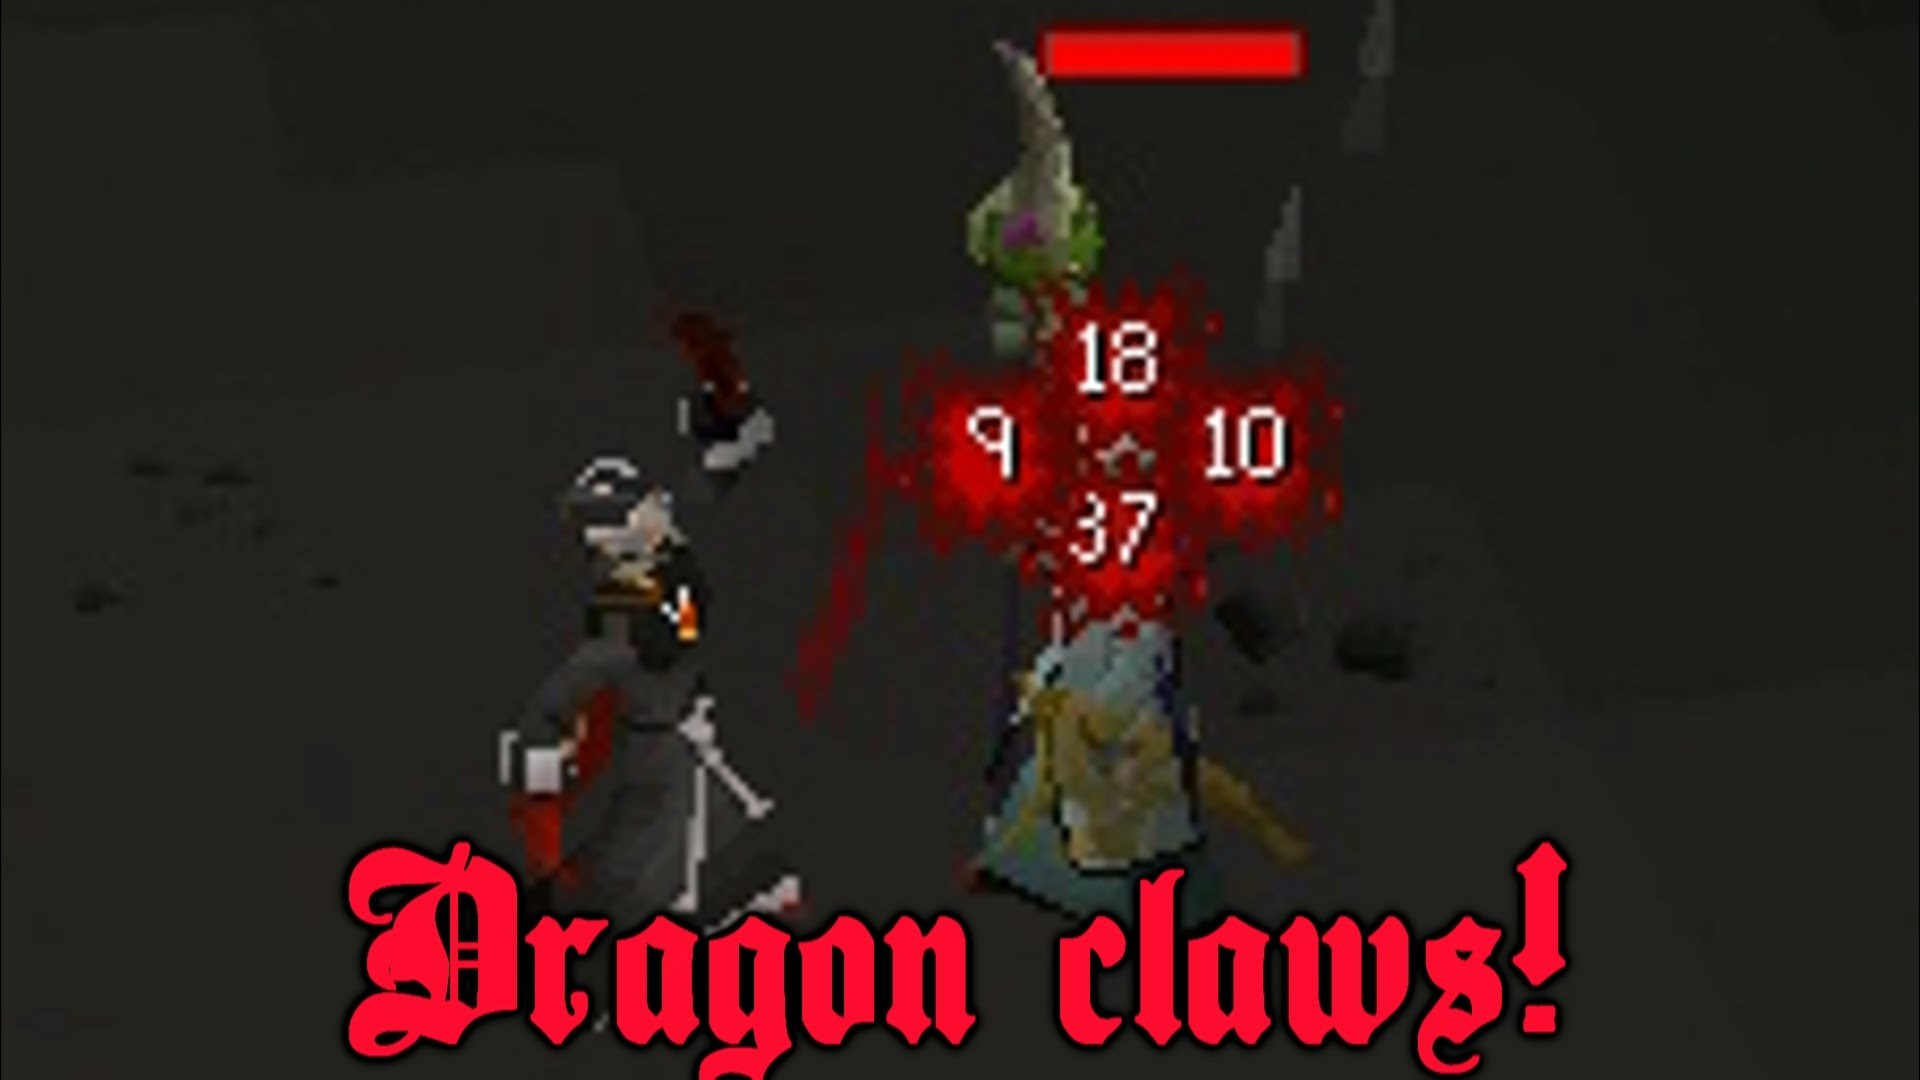 DRAGON CLAWS RUSHING PKING OLDSCHOOL RUNESCAPE PK (OSRS 2007) – YouTube